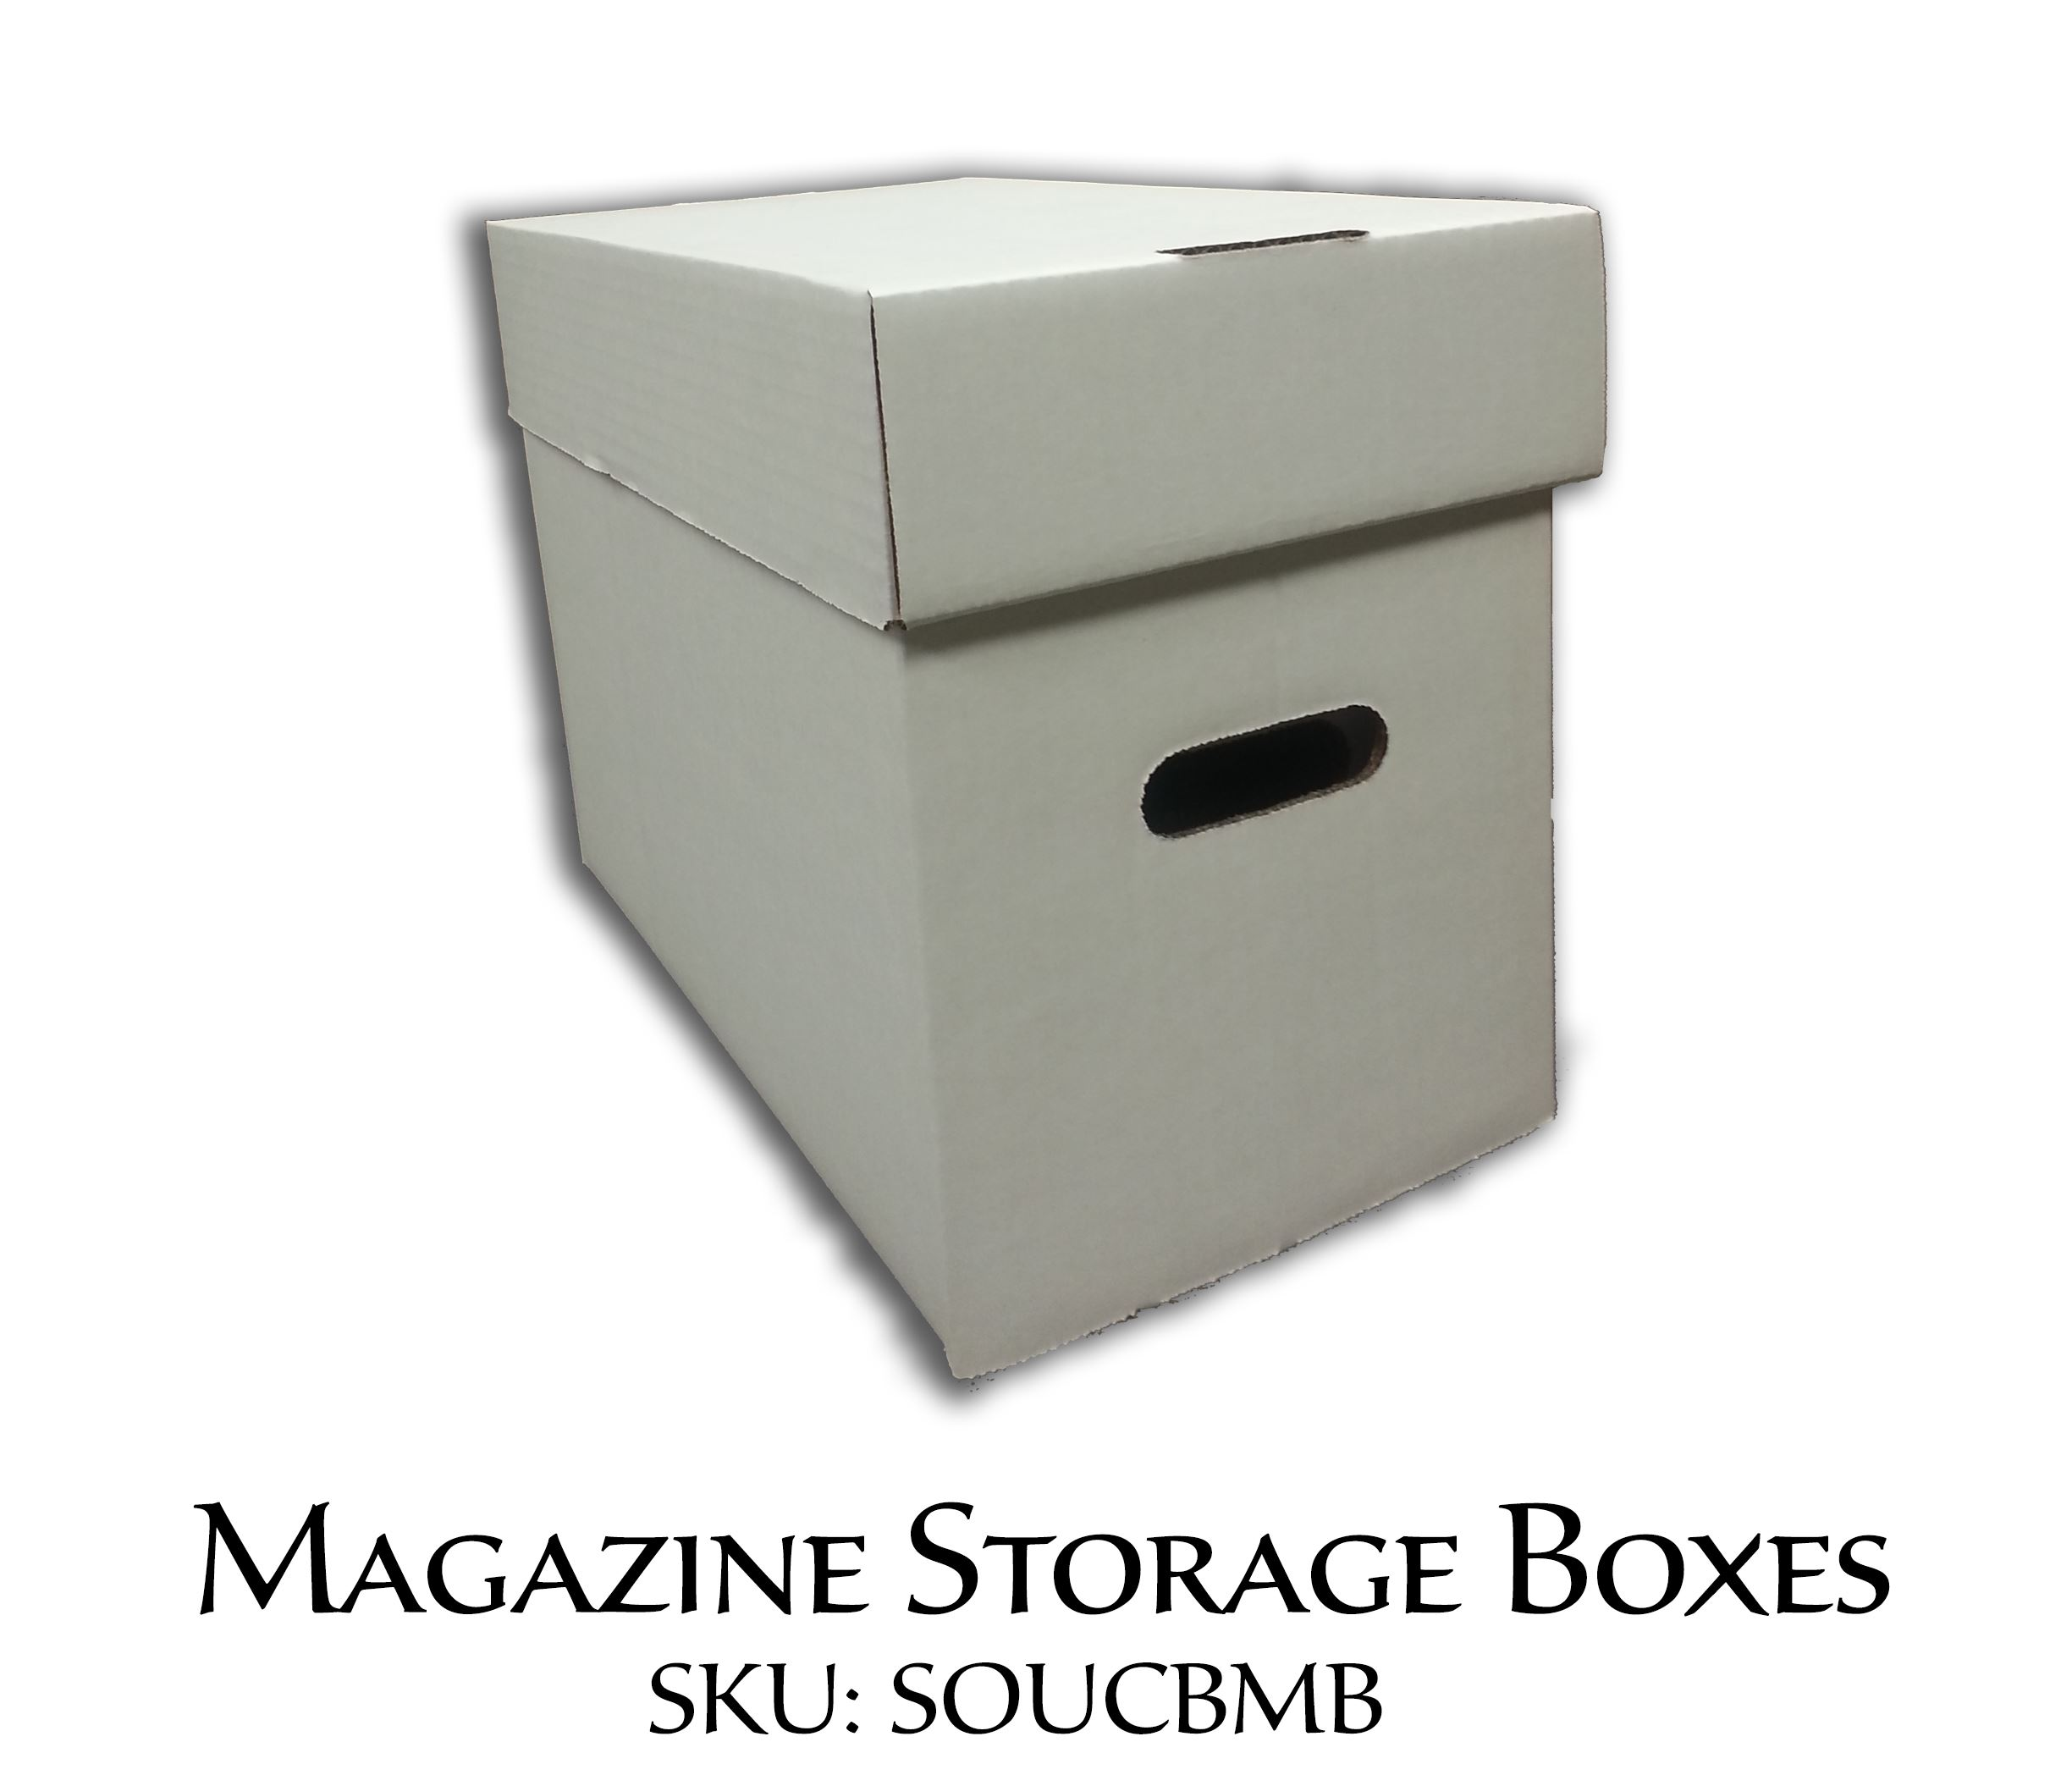 Magazine Storage Boxes Southern Hobby Supply SOUCBMB. View Larger  sc 1 st  Southern Hobby Supply & Magazine Storage Boxes - SOUCBMB | Southern Hobby Supply